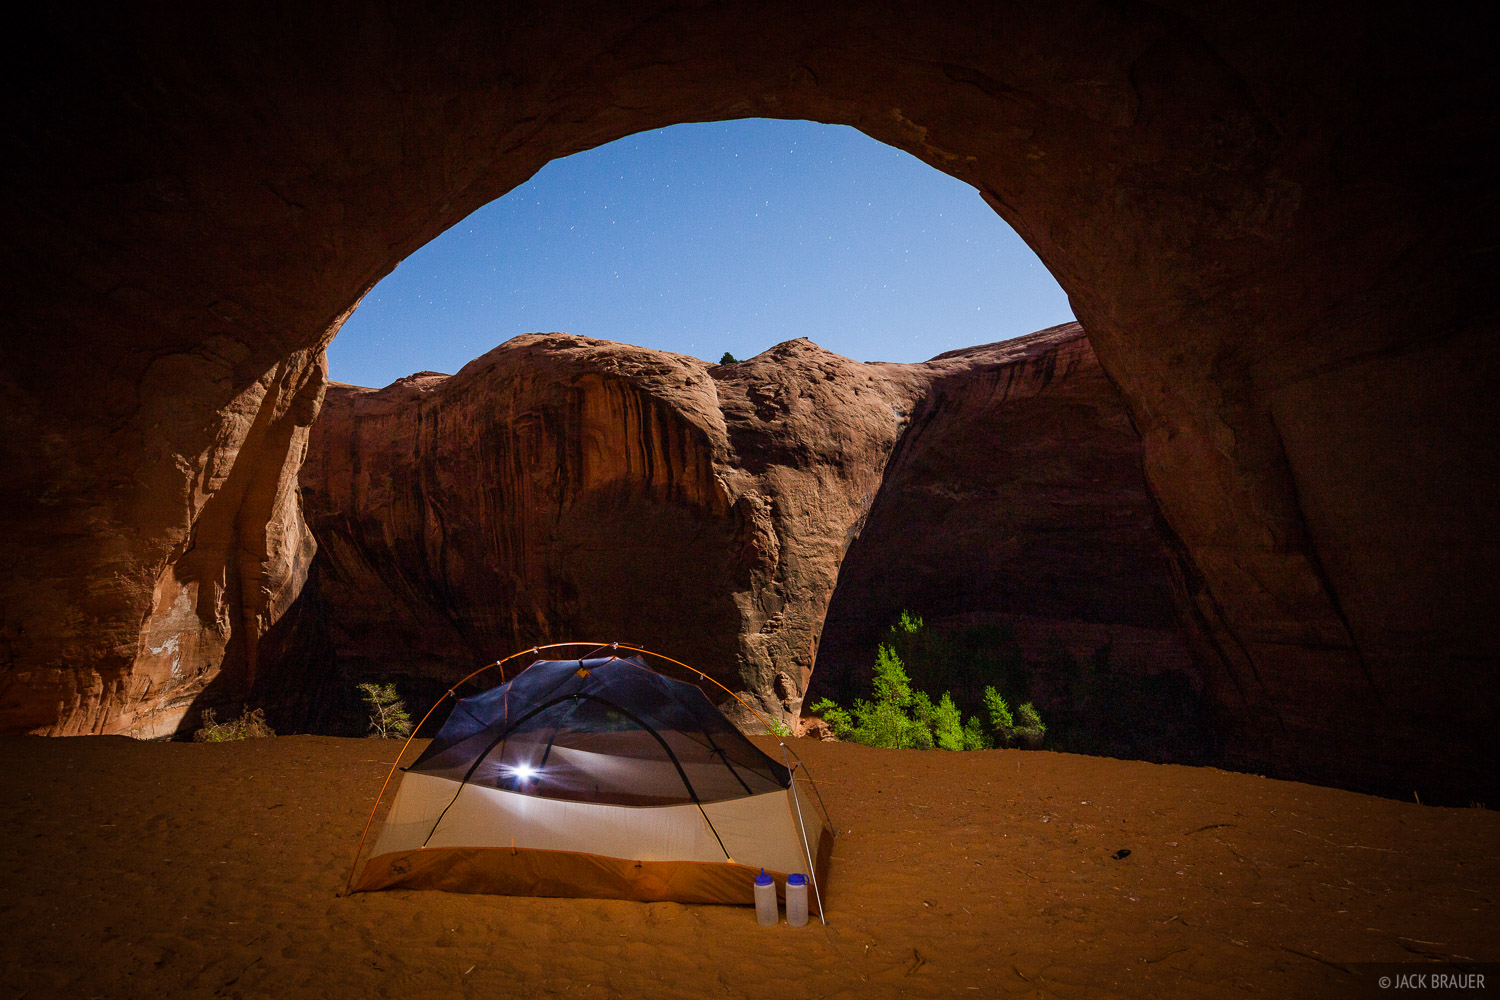 Coyote Gulch, Escalante, Escalante National Monument, Utah, moonlight, tent, Grand Staircase-Escalante National Monument, photo